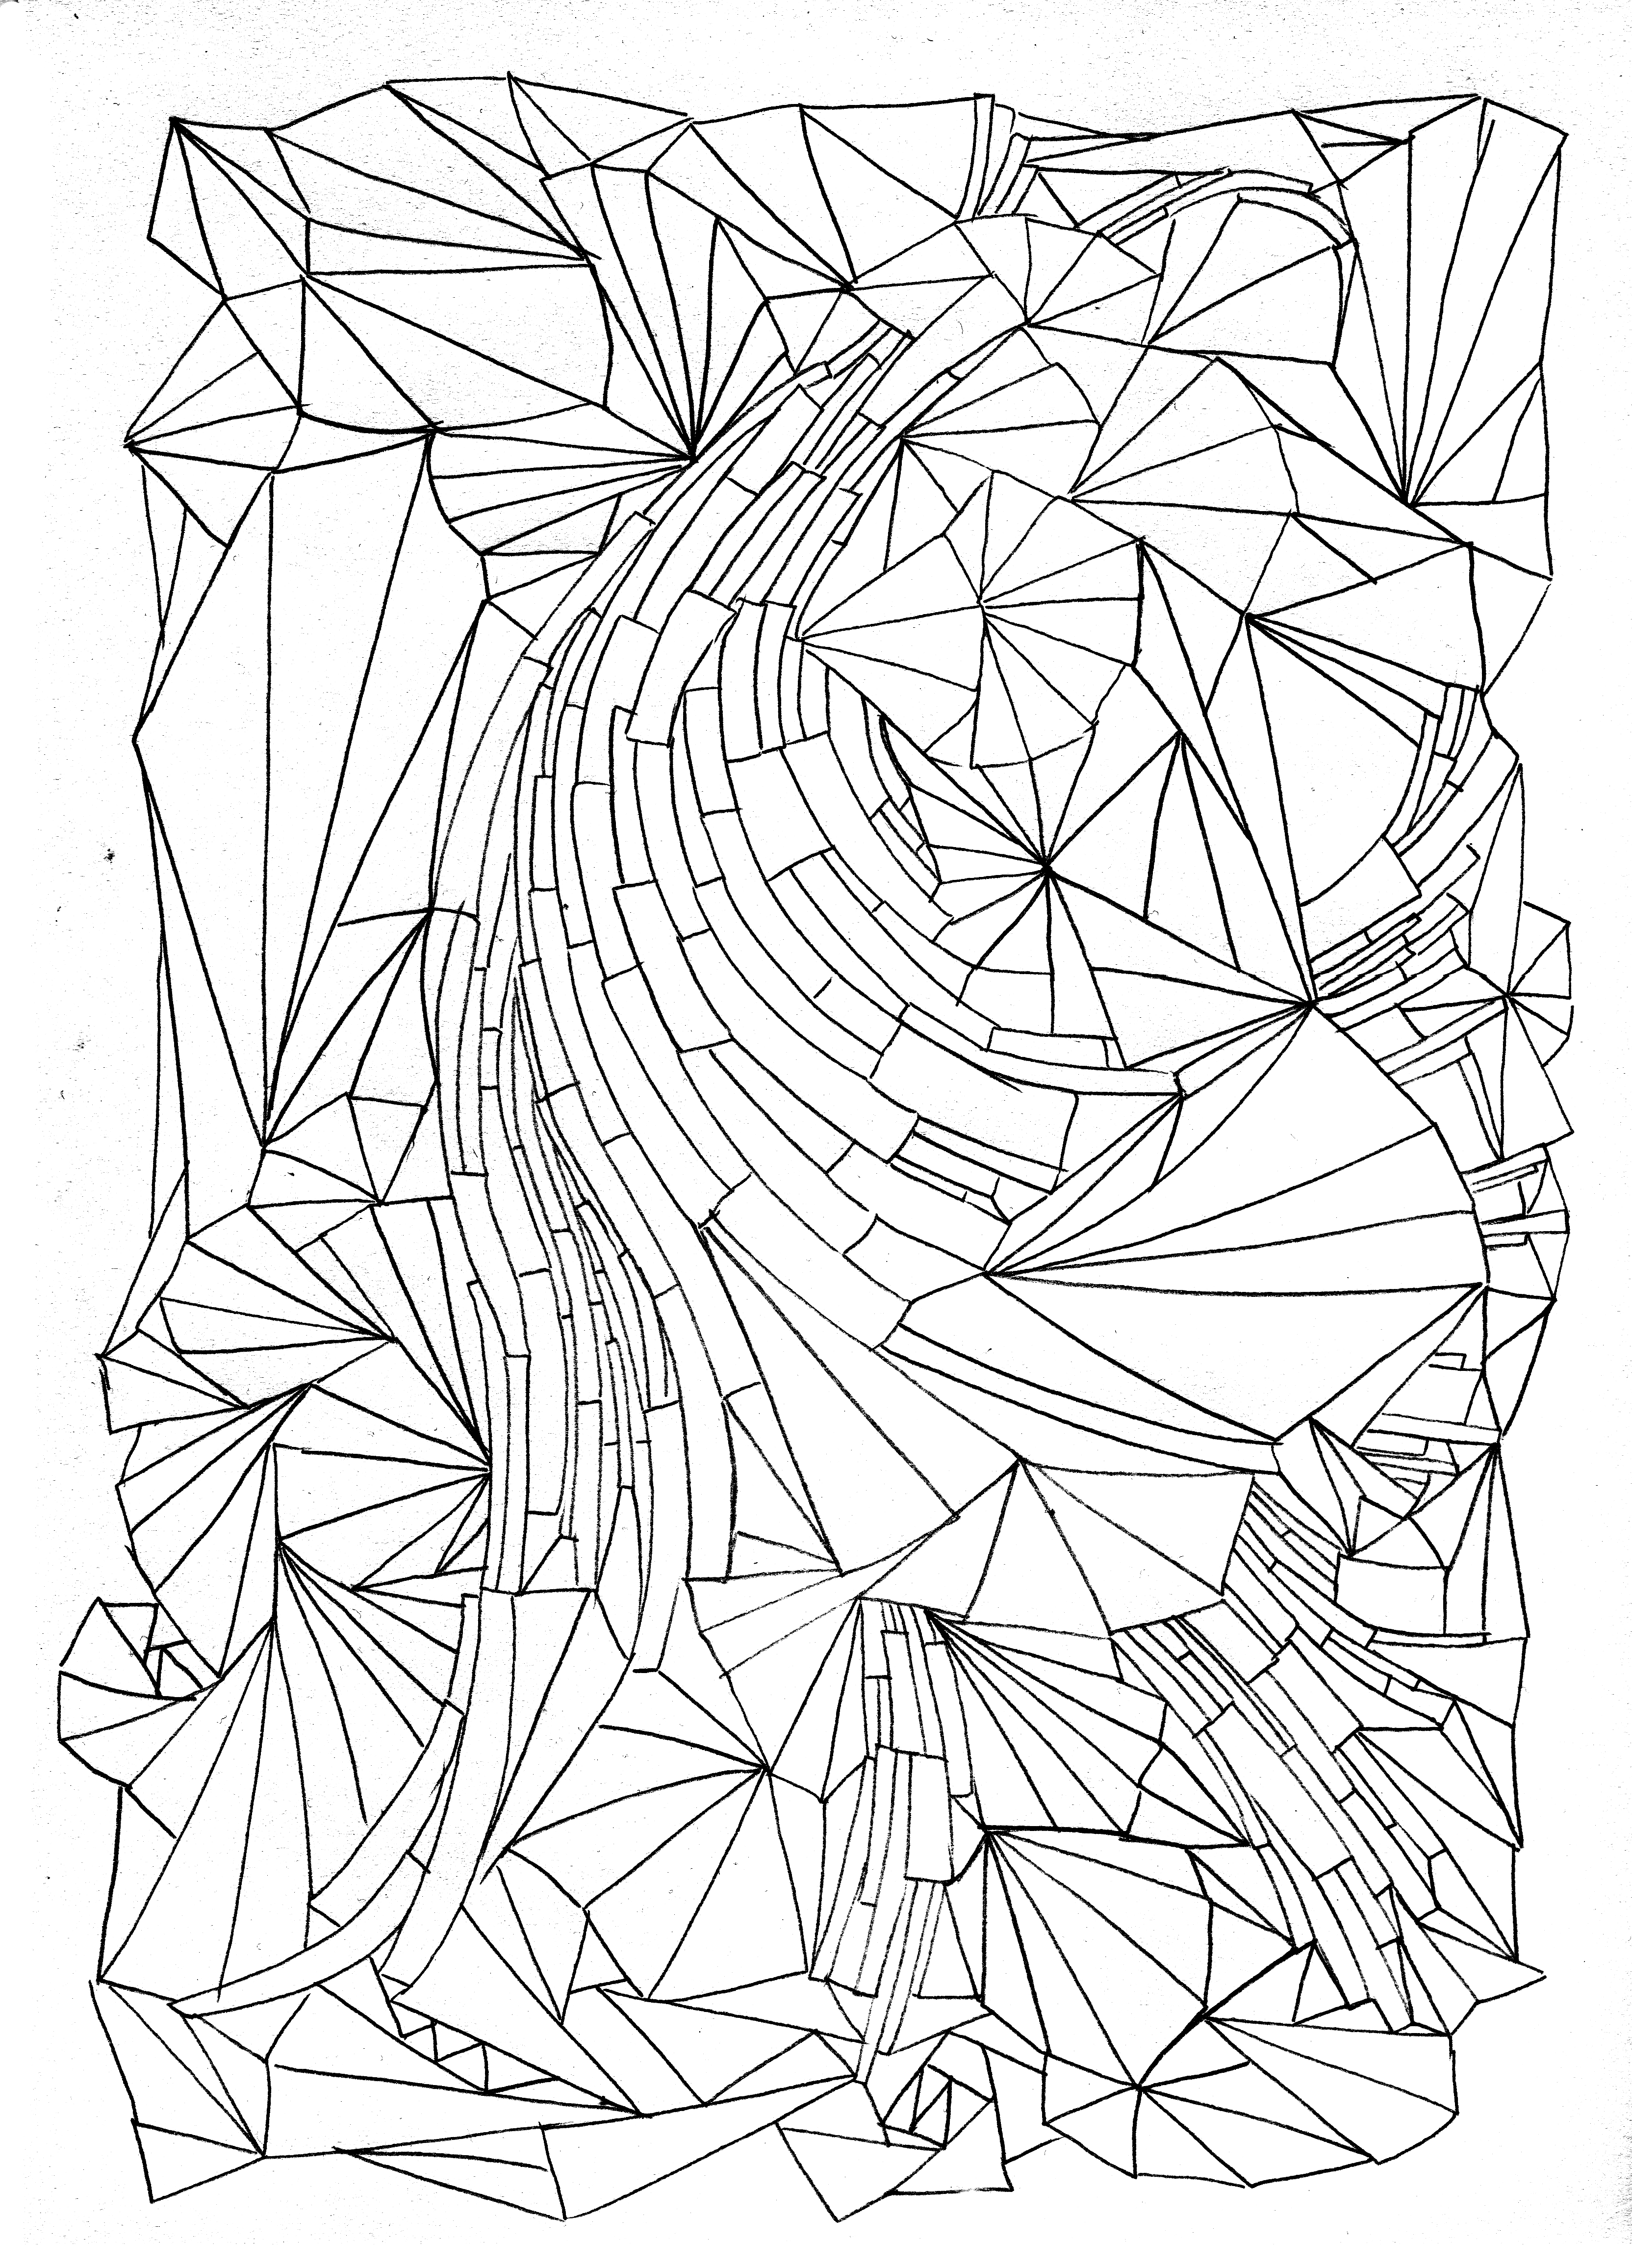 coloring pages designs patterns colouring designs thelinoprinter designs coloring pages patterns